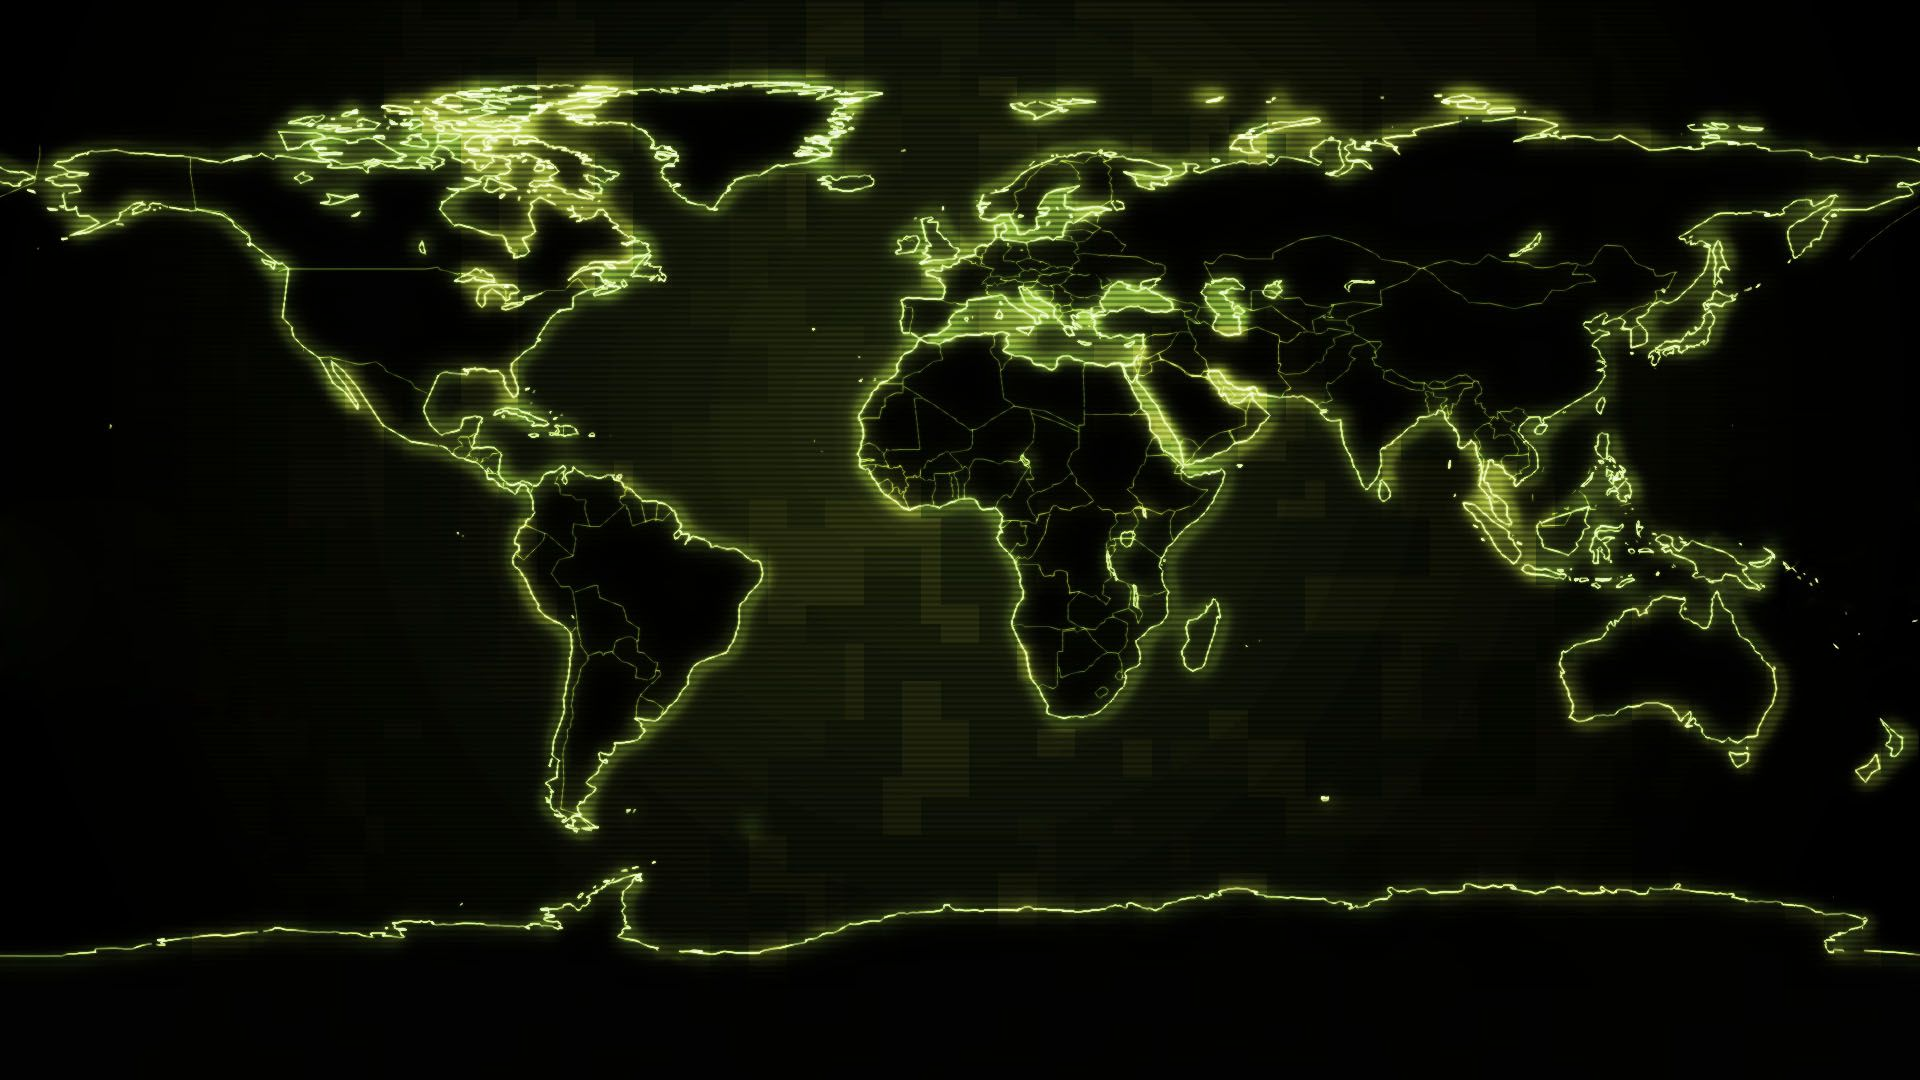 Map night hd wallpaper collection 11 wallpapers screenheaven lights night world map desktop and mobile background gumiabroncs Choice Image